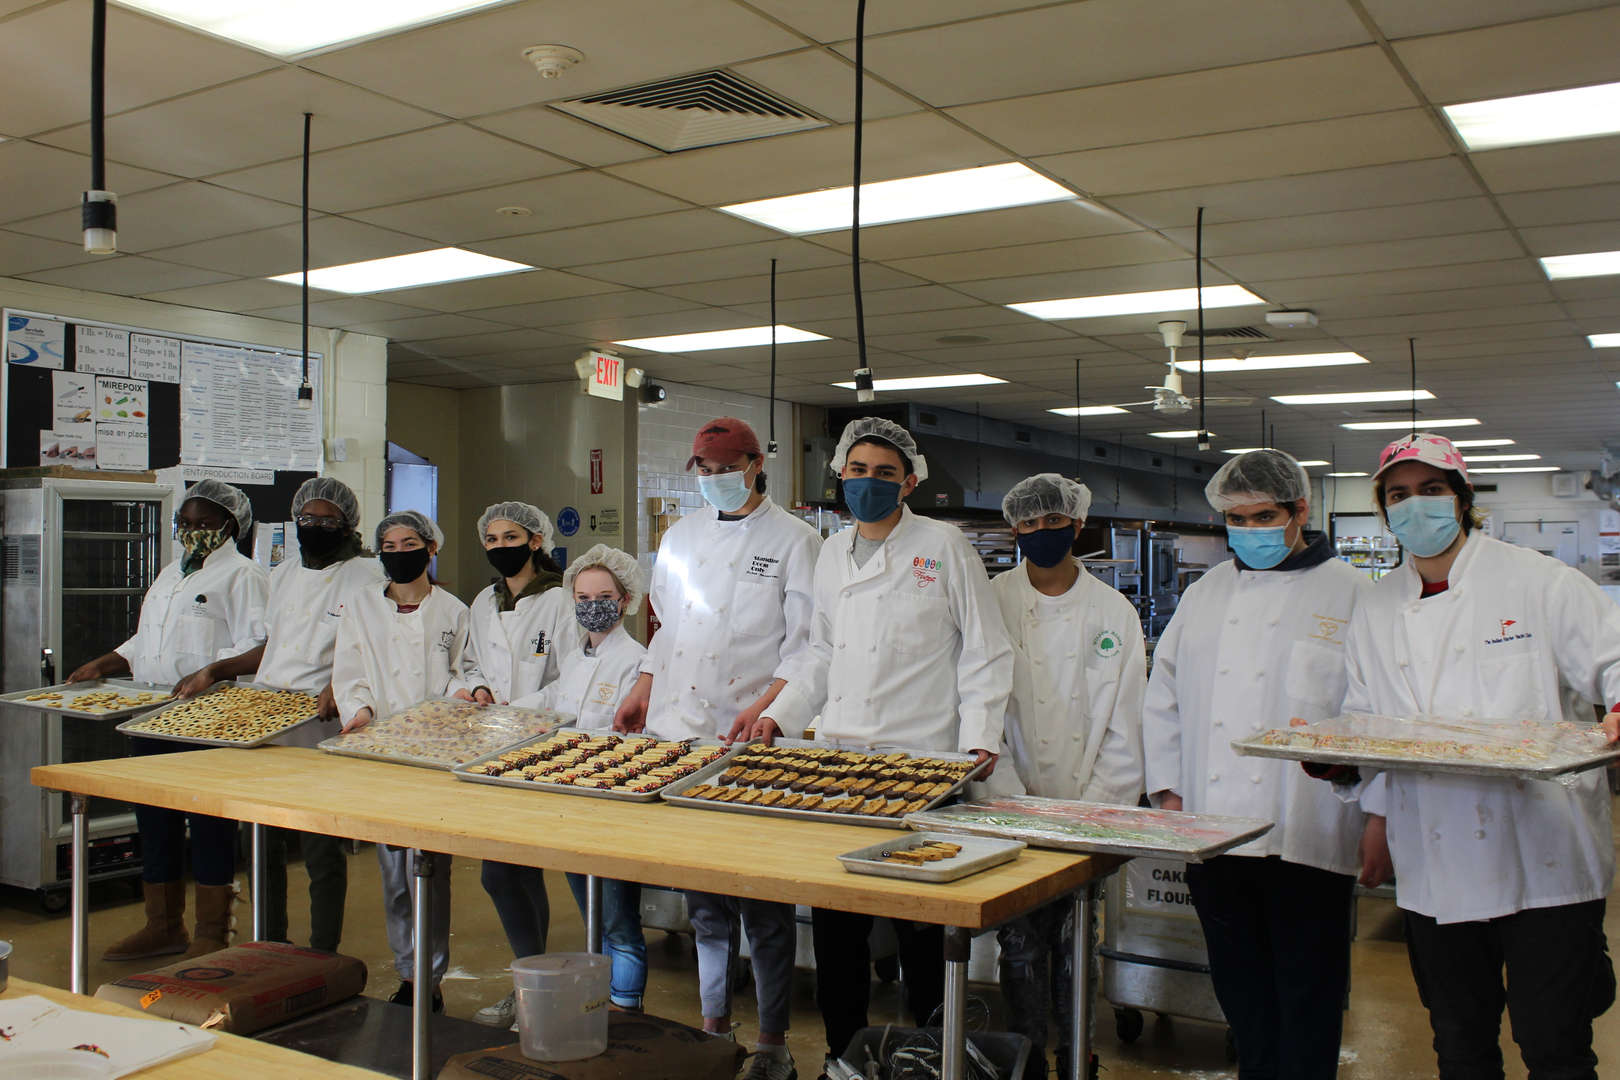 Group of culinary students holding trays of cookies